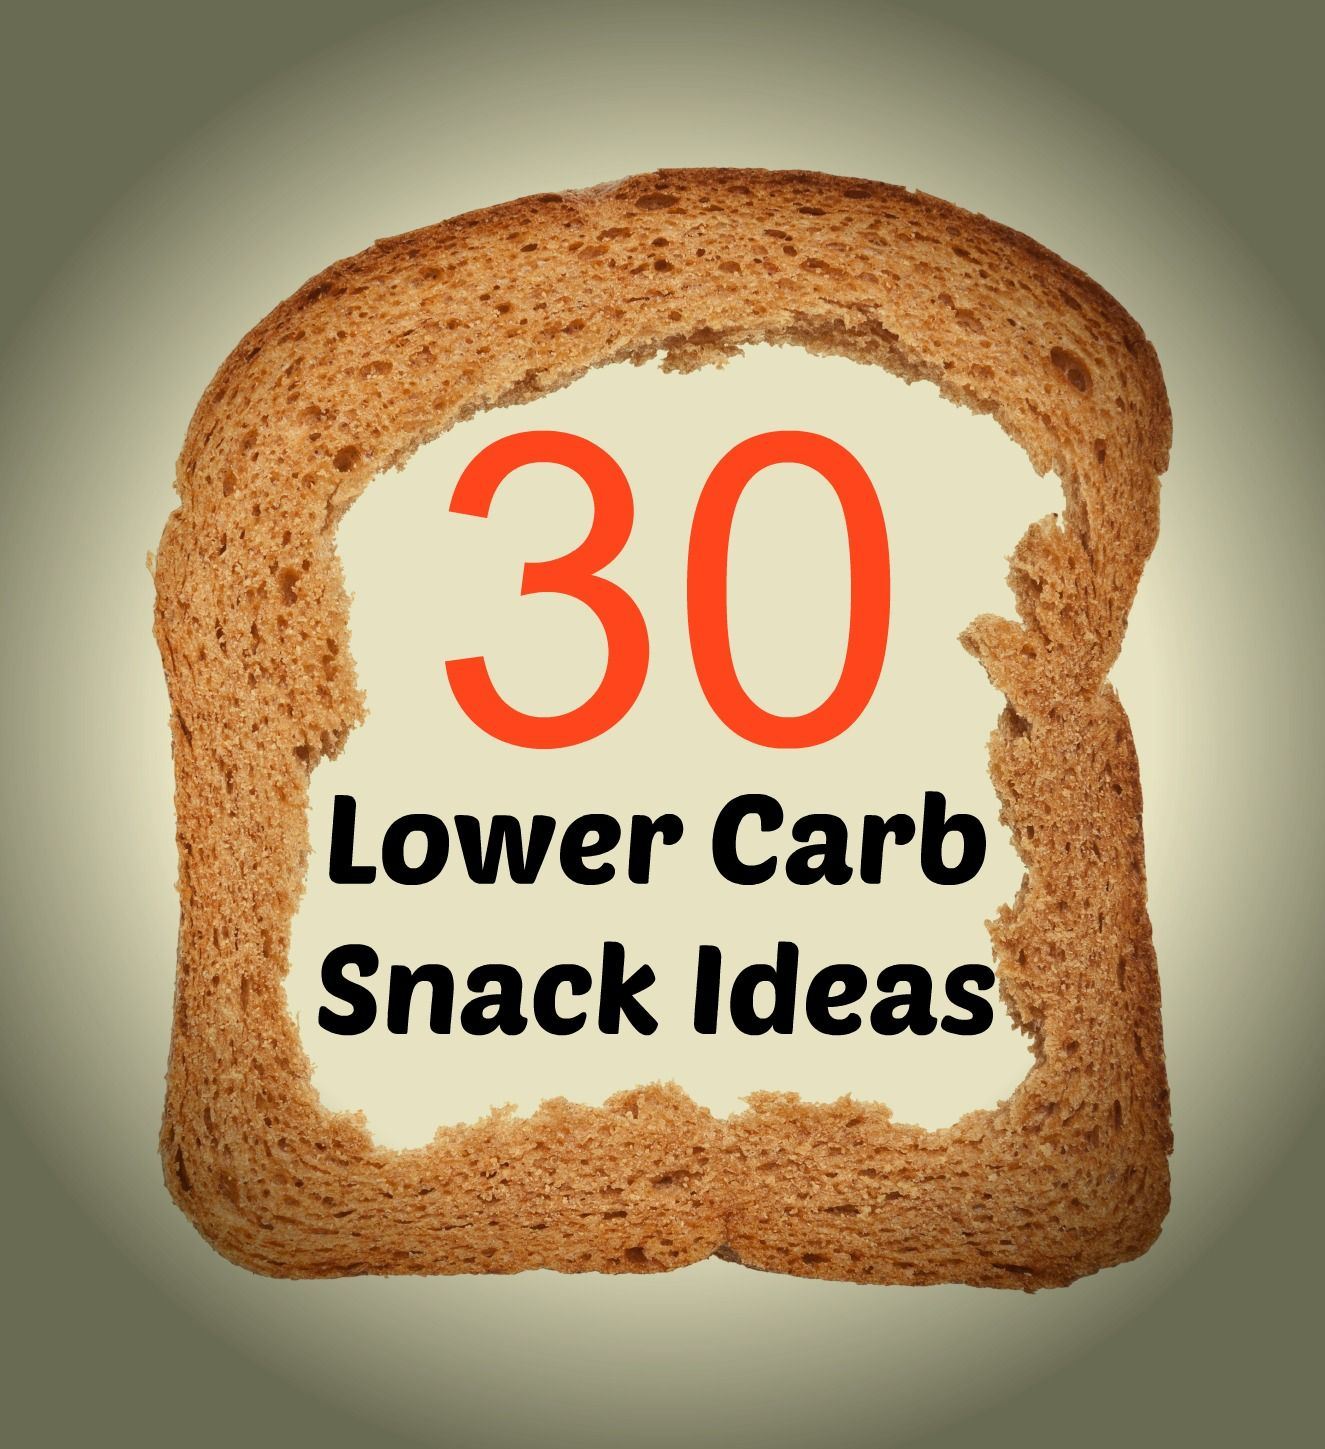 30 Lower Carb Snack Ideas Healthy snacks for diabetics